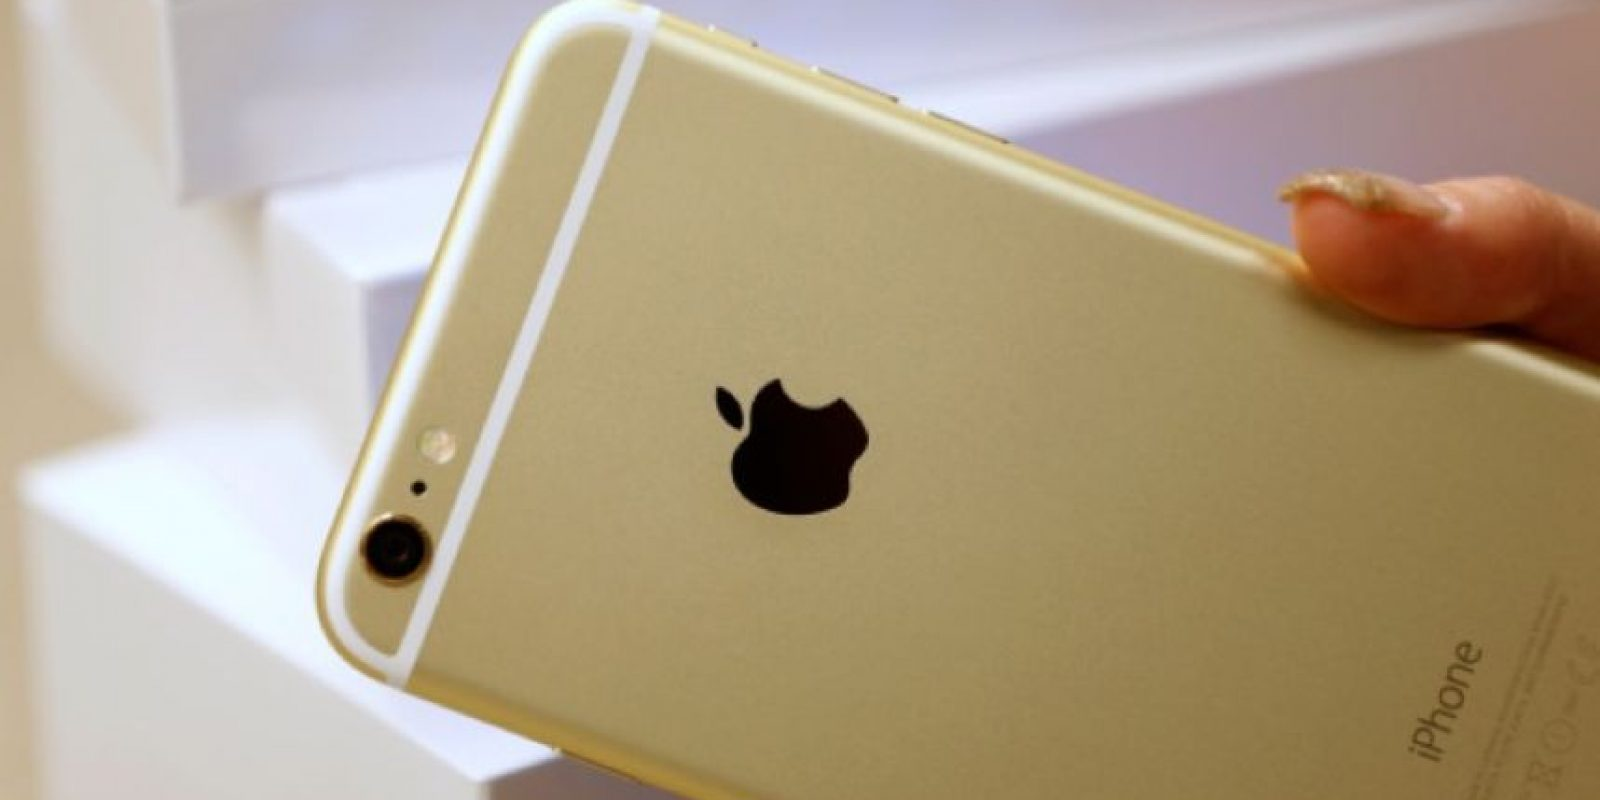 El smartphone de Apple ha sido sometido a pruebas extremas. Foto: Getty Images